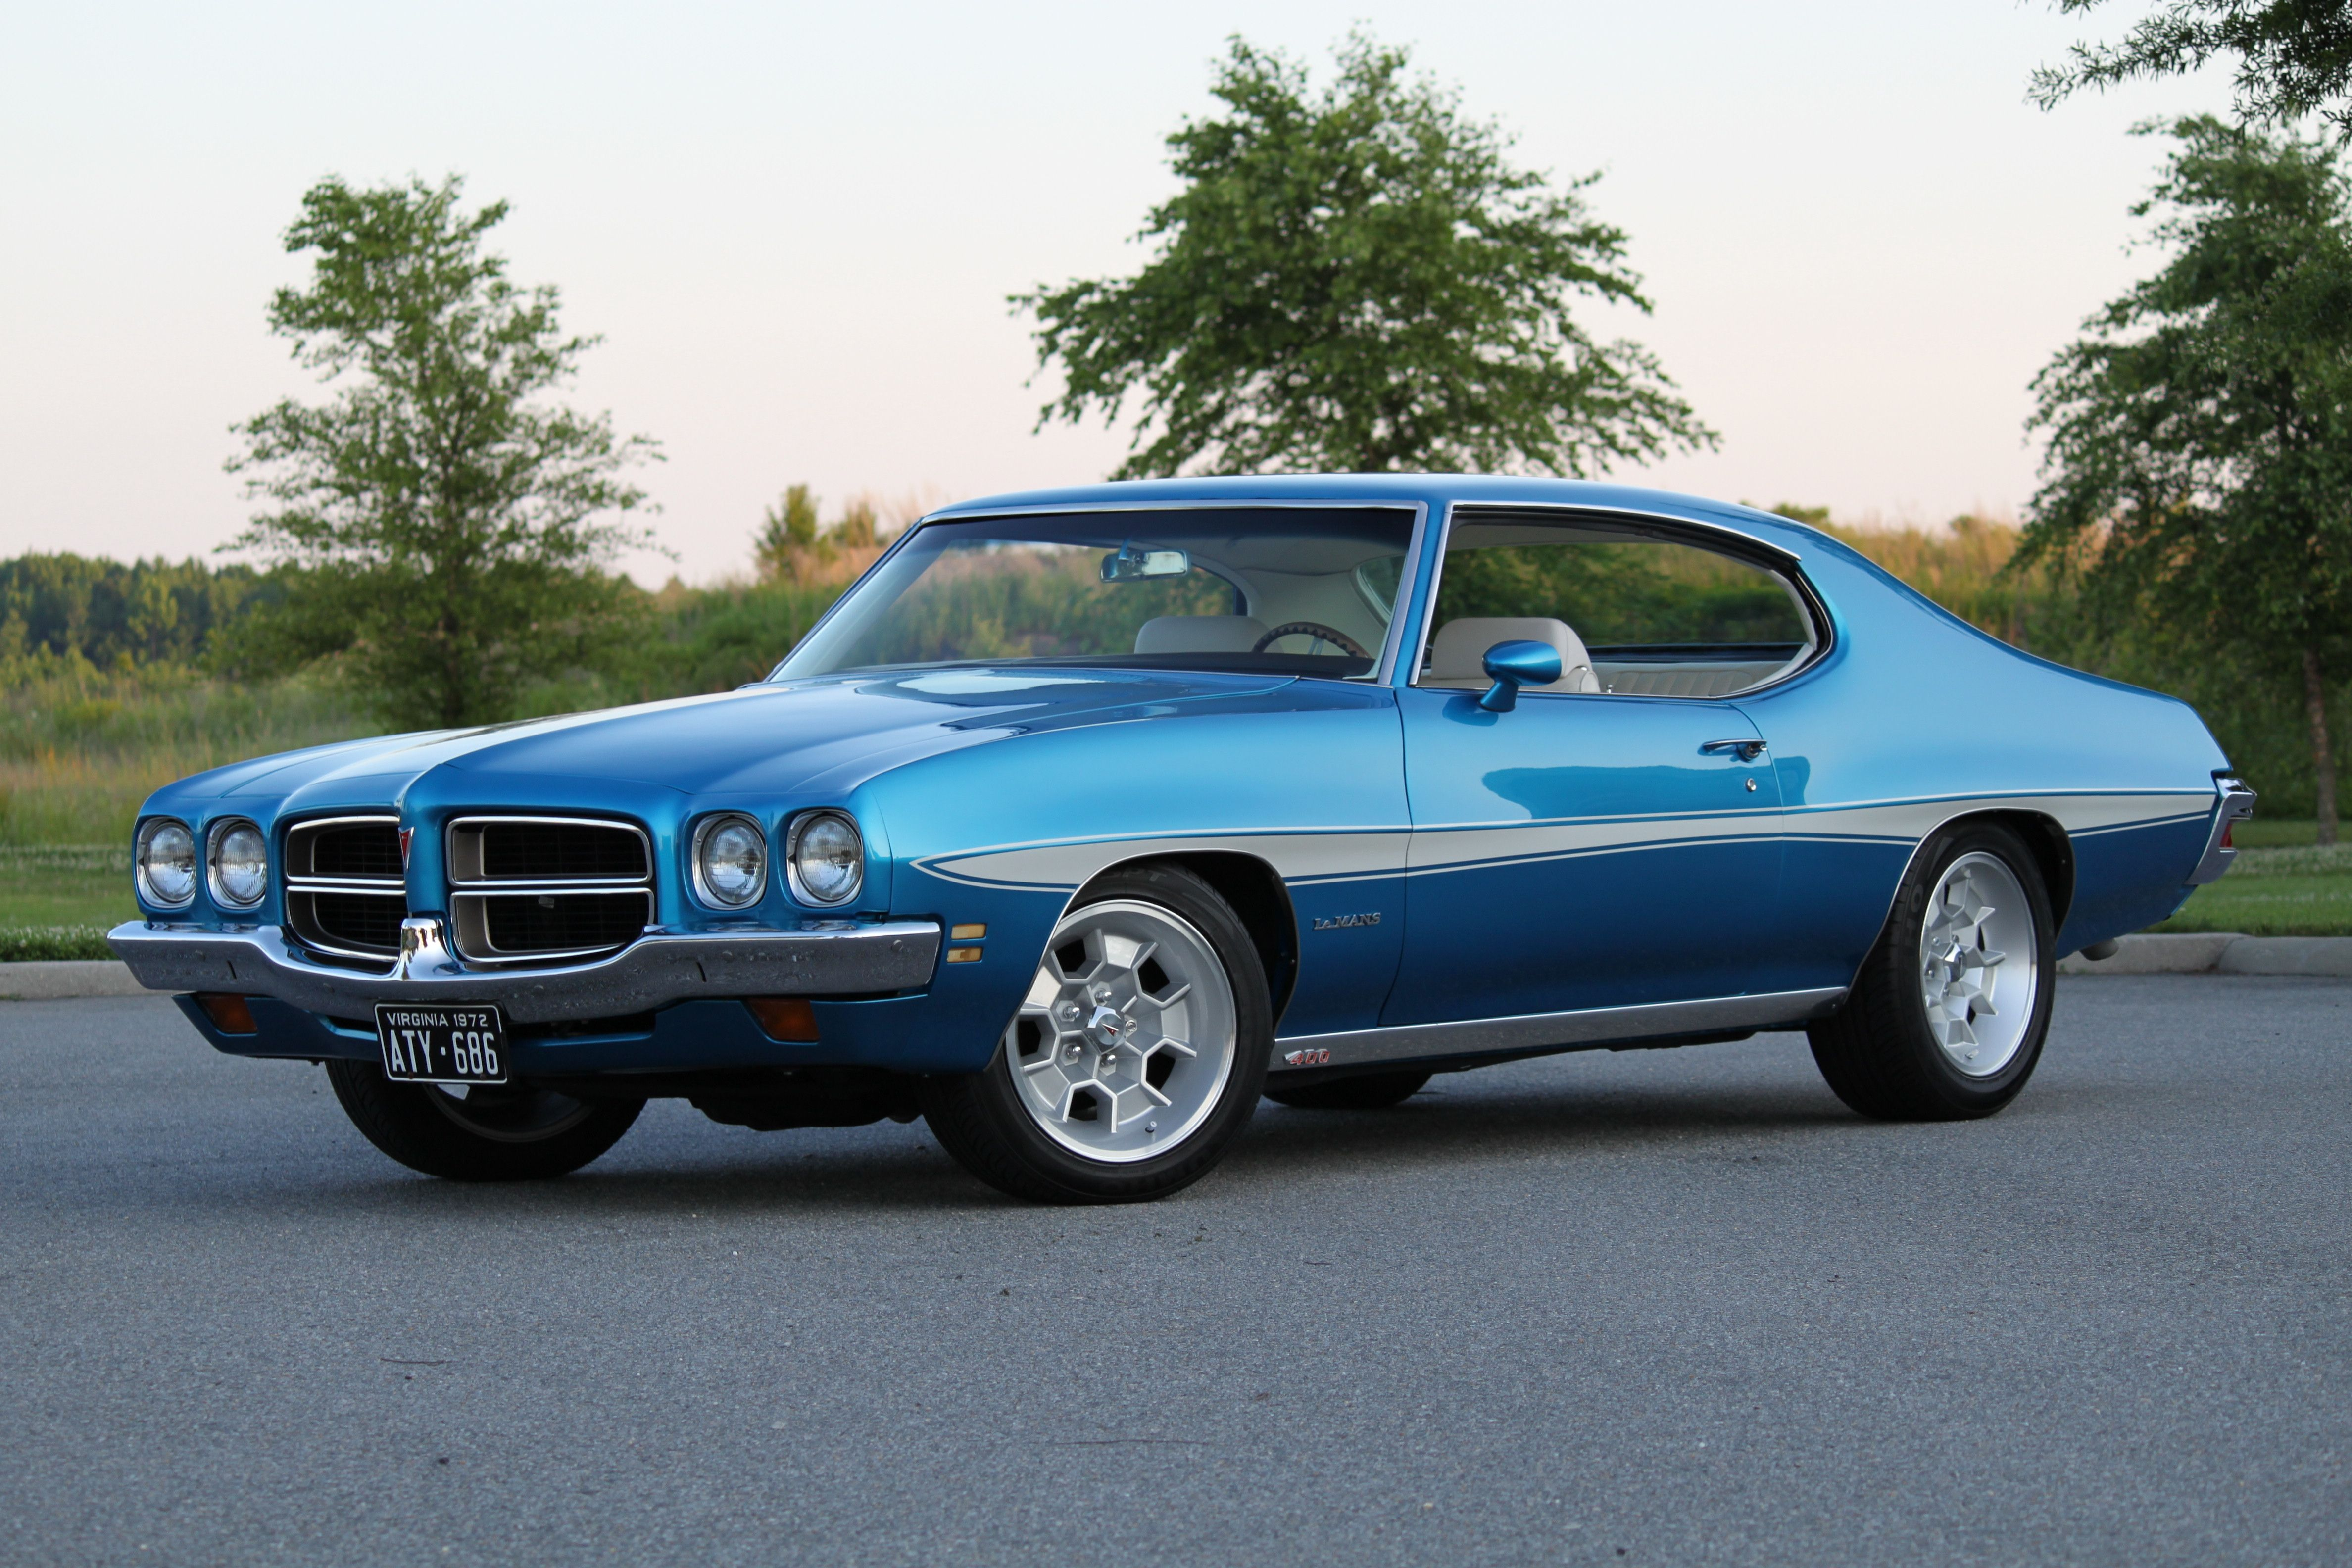 1972 pontiac le mans - photo #24